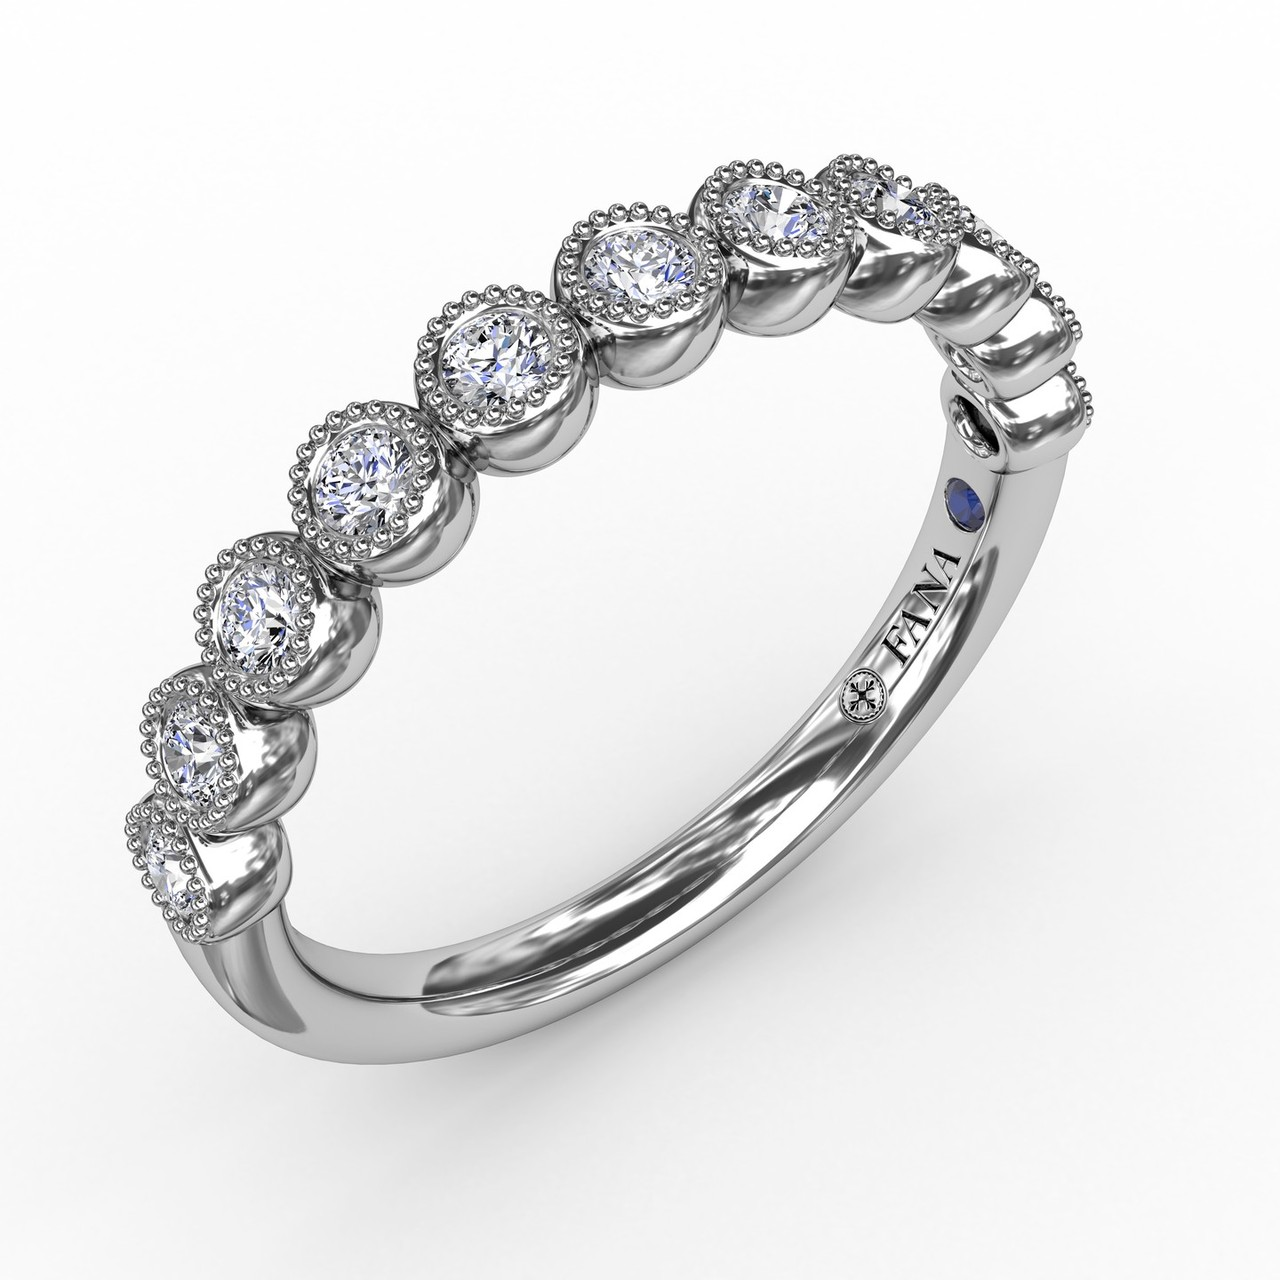 Vintage Bezel Set Diamond Band  - Glamour is in the details.  Our vintage inspired bezel set diamond band offers sophisticated artistry for those with a vintage aesthetic. Perfect for stacking, this band is available in Platinum, 18KT & 14KT gold and can be customized through an Authorized Fana Retailer.